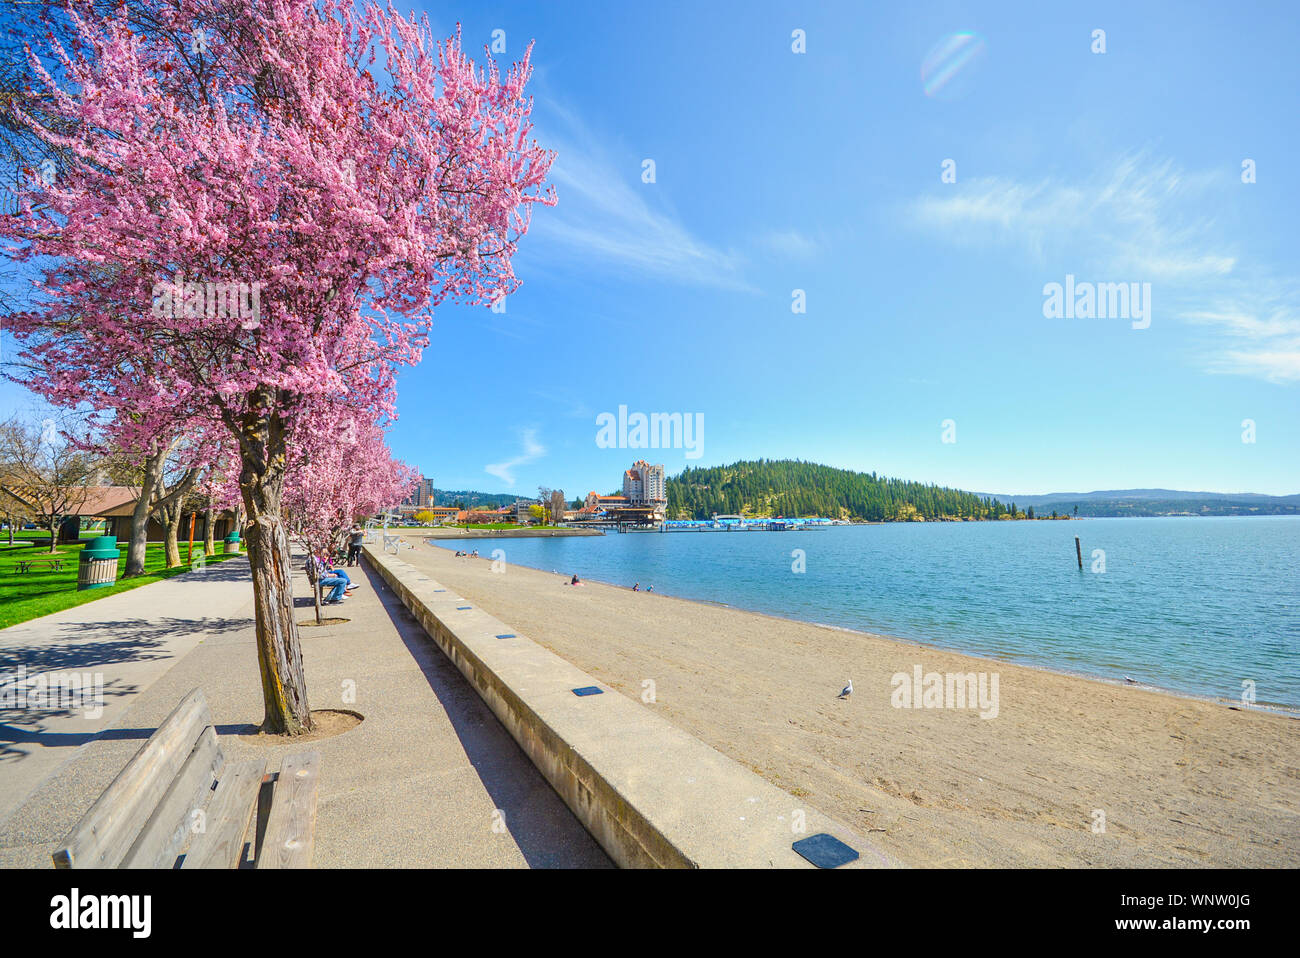 Colorful trees blossoming in the Spring along the sandy shores of Lake Coeur d'Alene in Coeur d'Alene, Idaho. Stock Photo